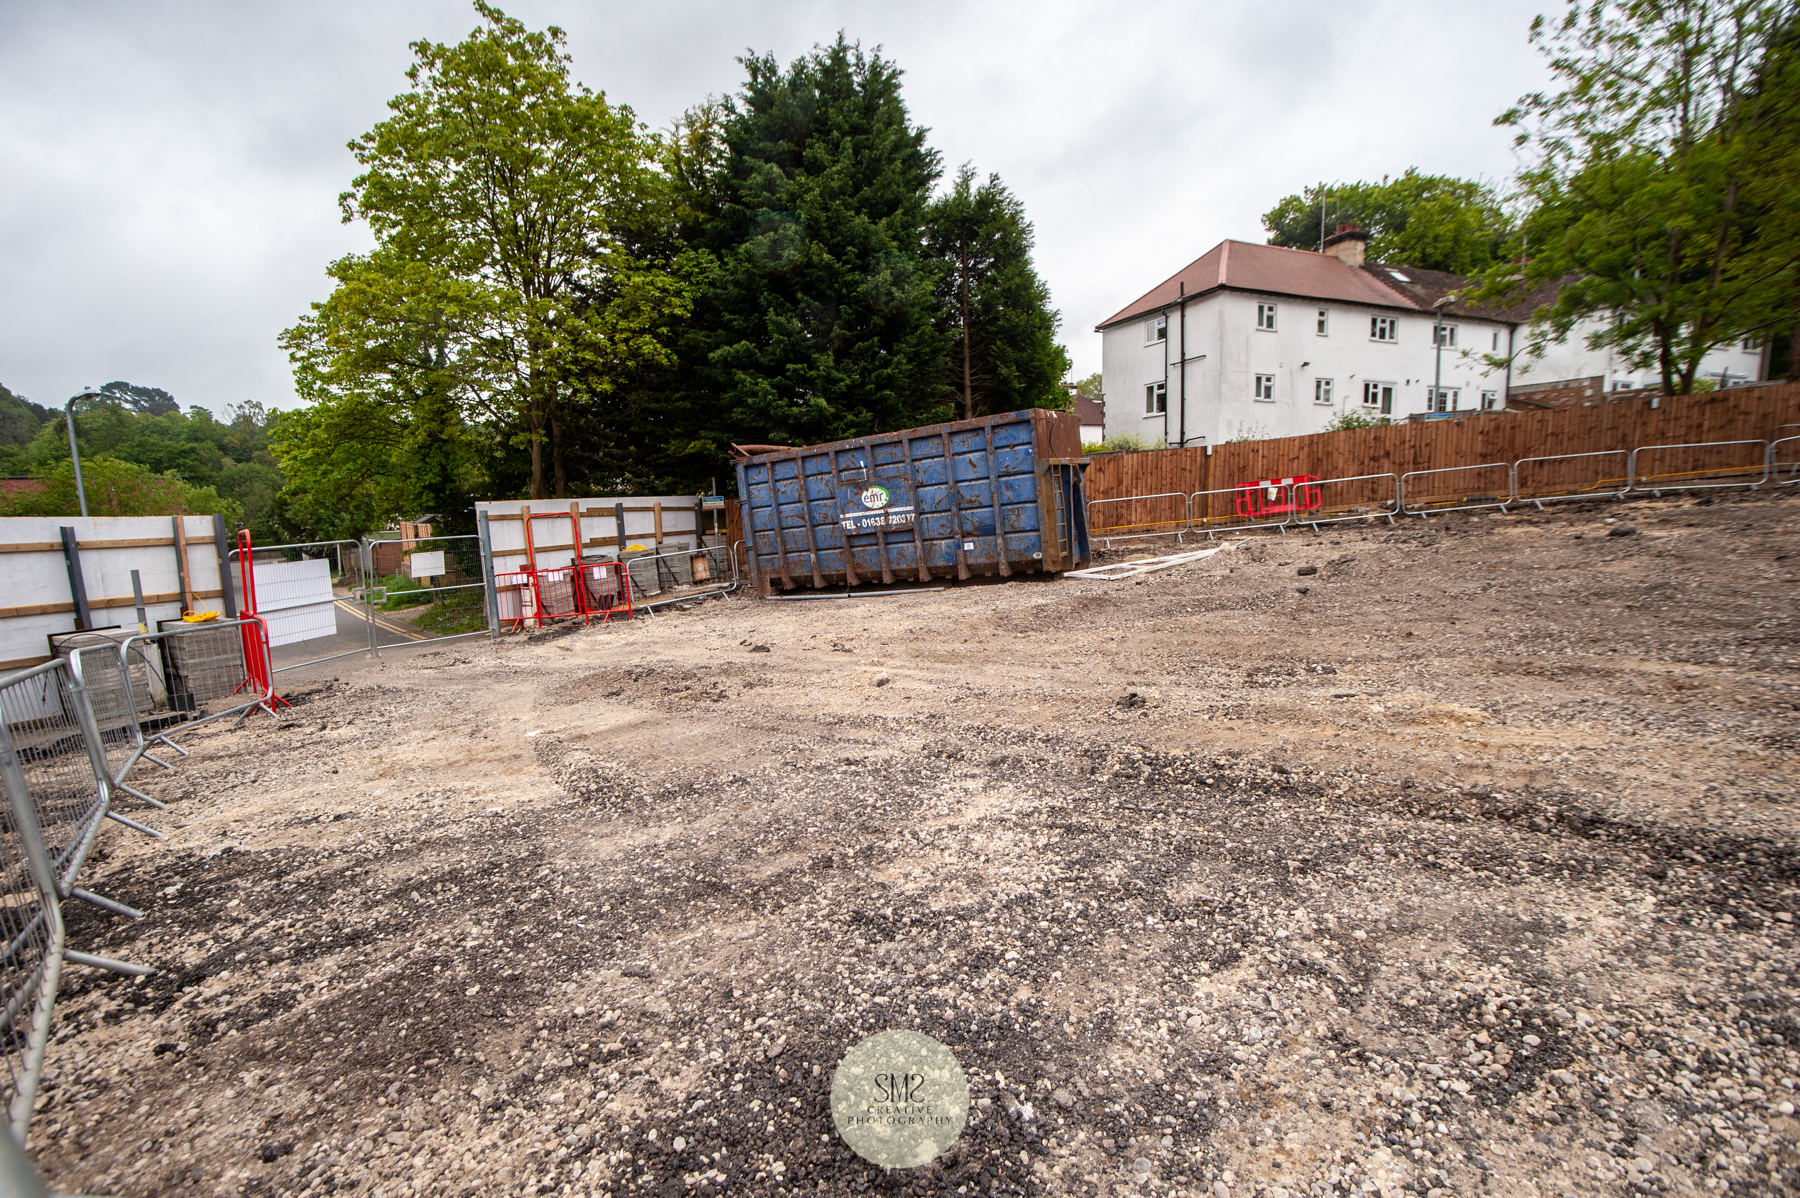 This area was once the Johnsdale car park, the gates at the end will be a new entance.